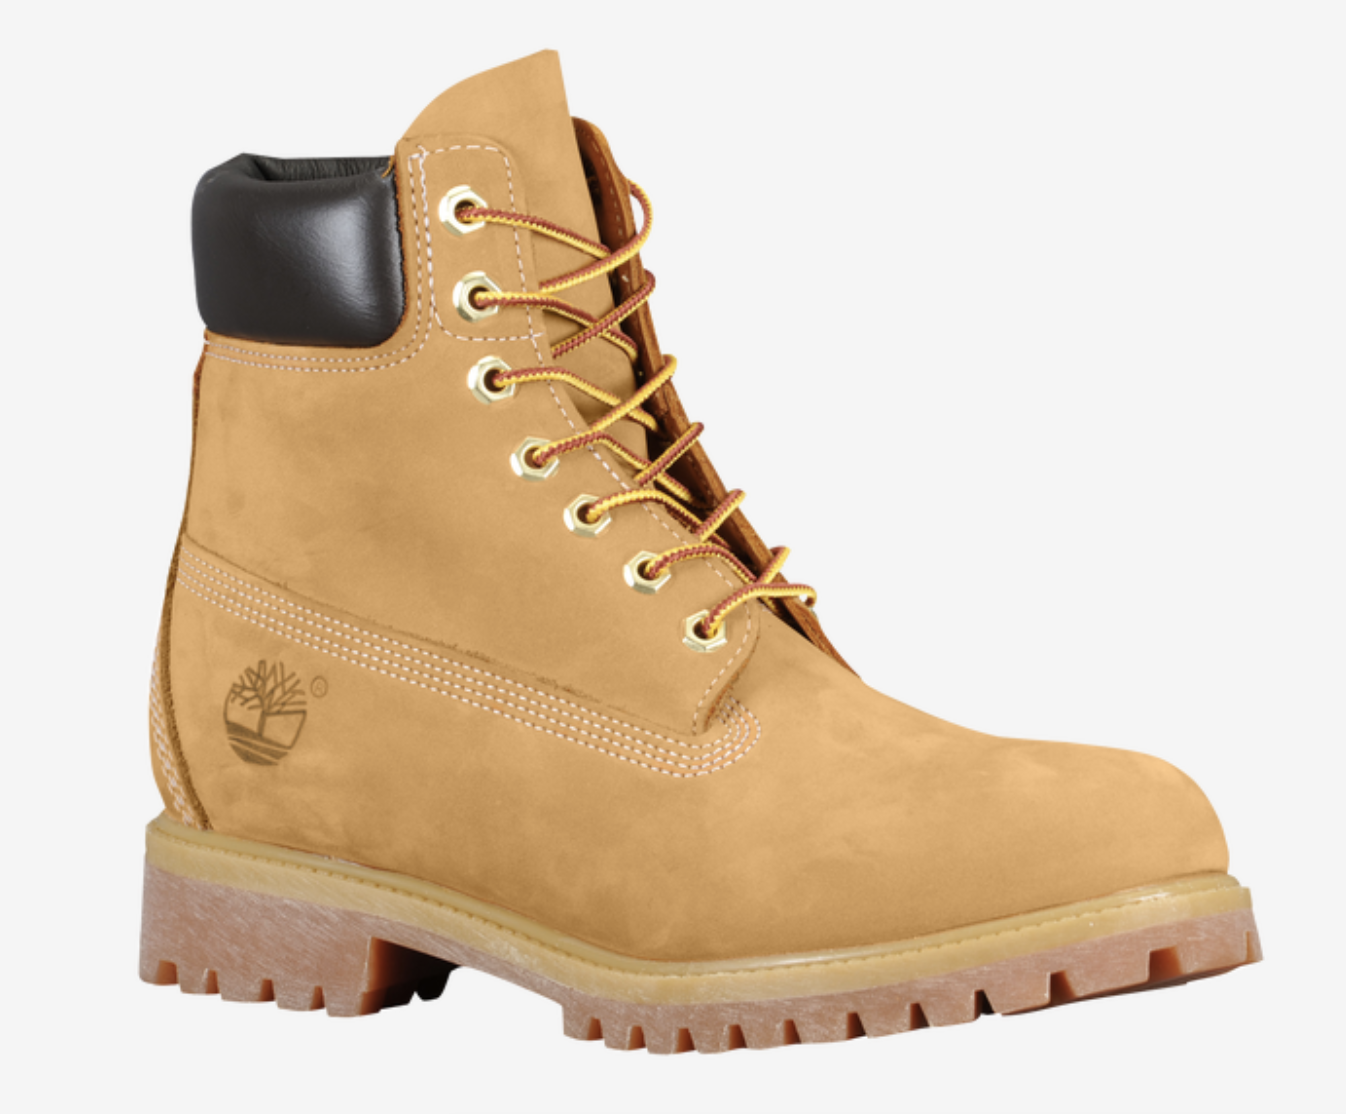 khaki colored timerland boots